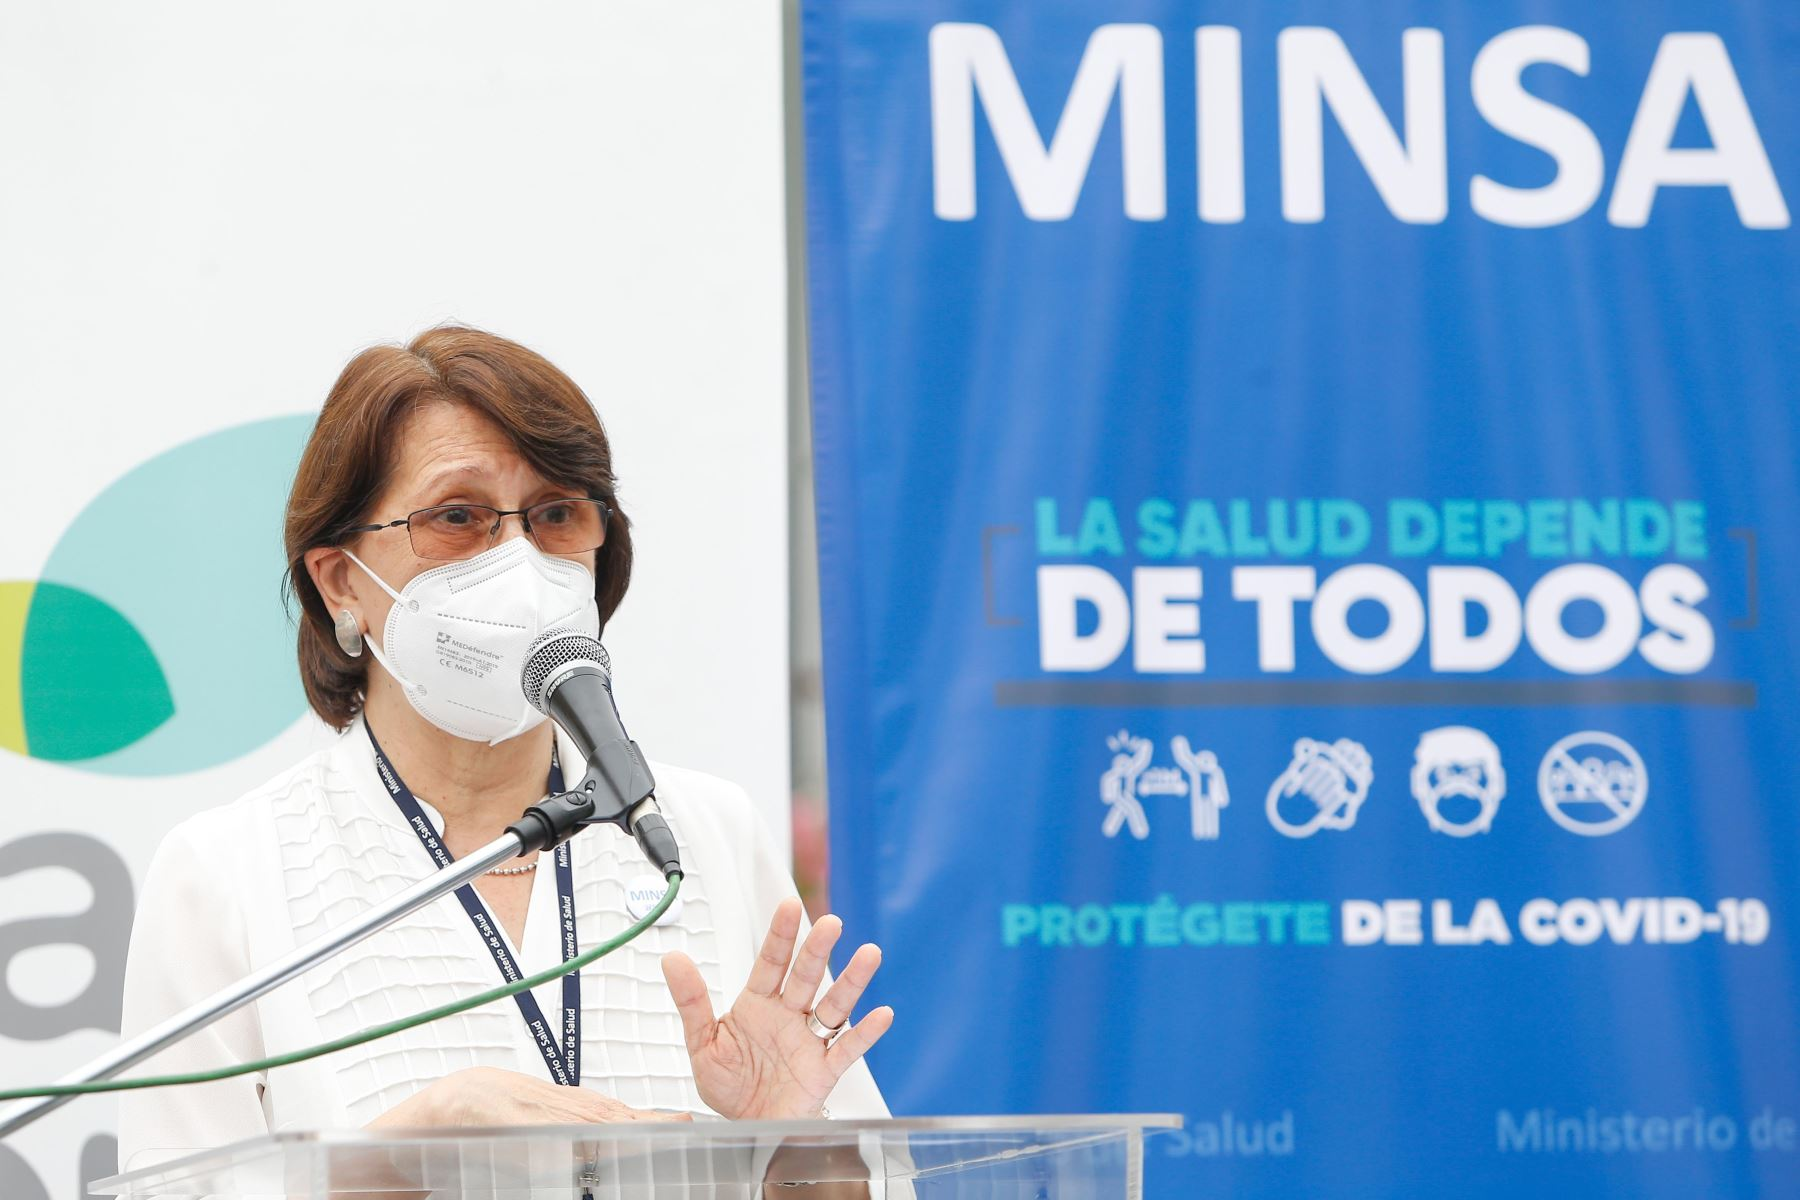 Photo: ANDINA/Ministry of Health of Peru